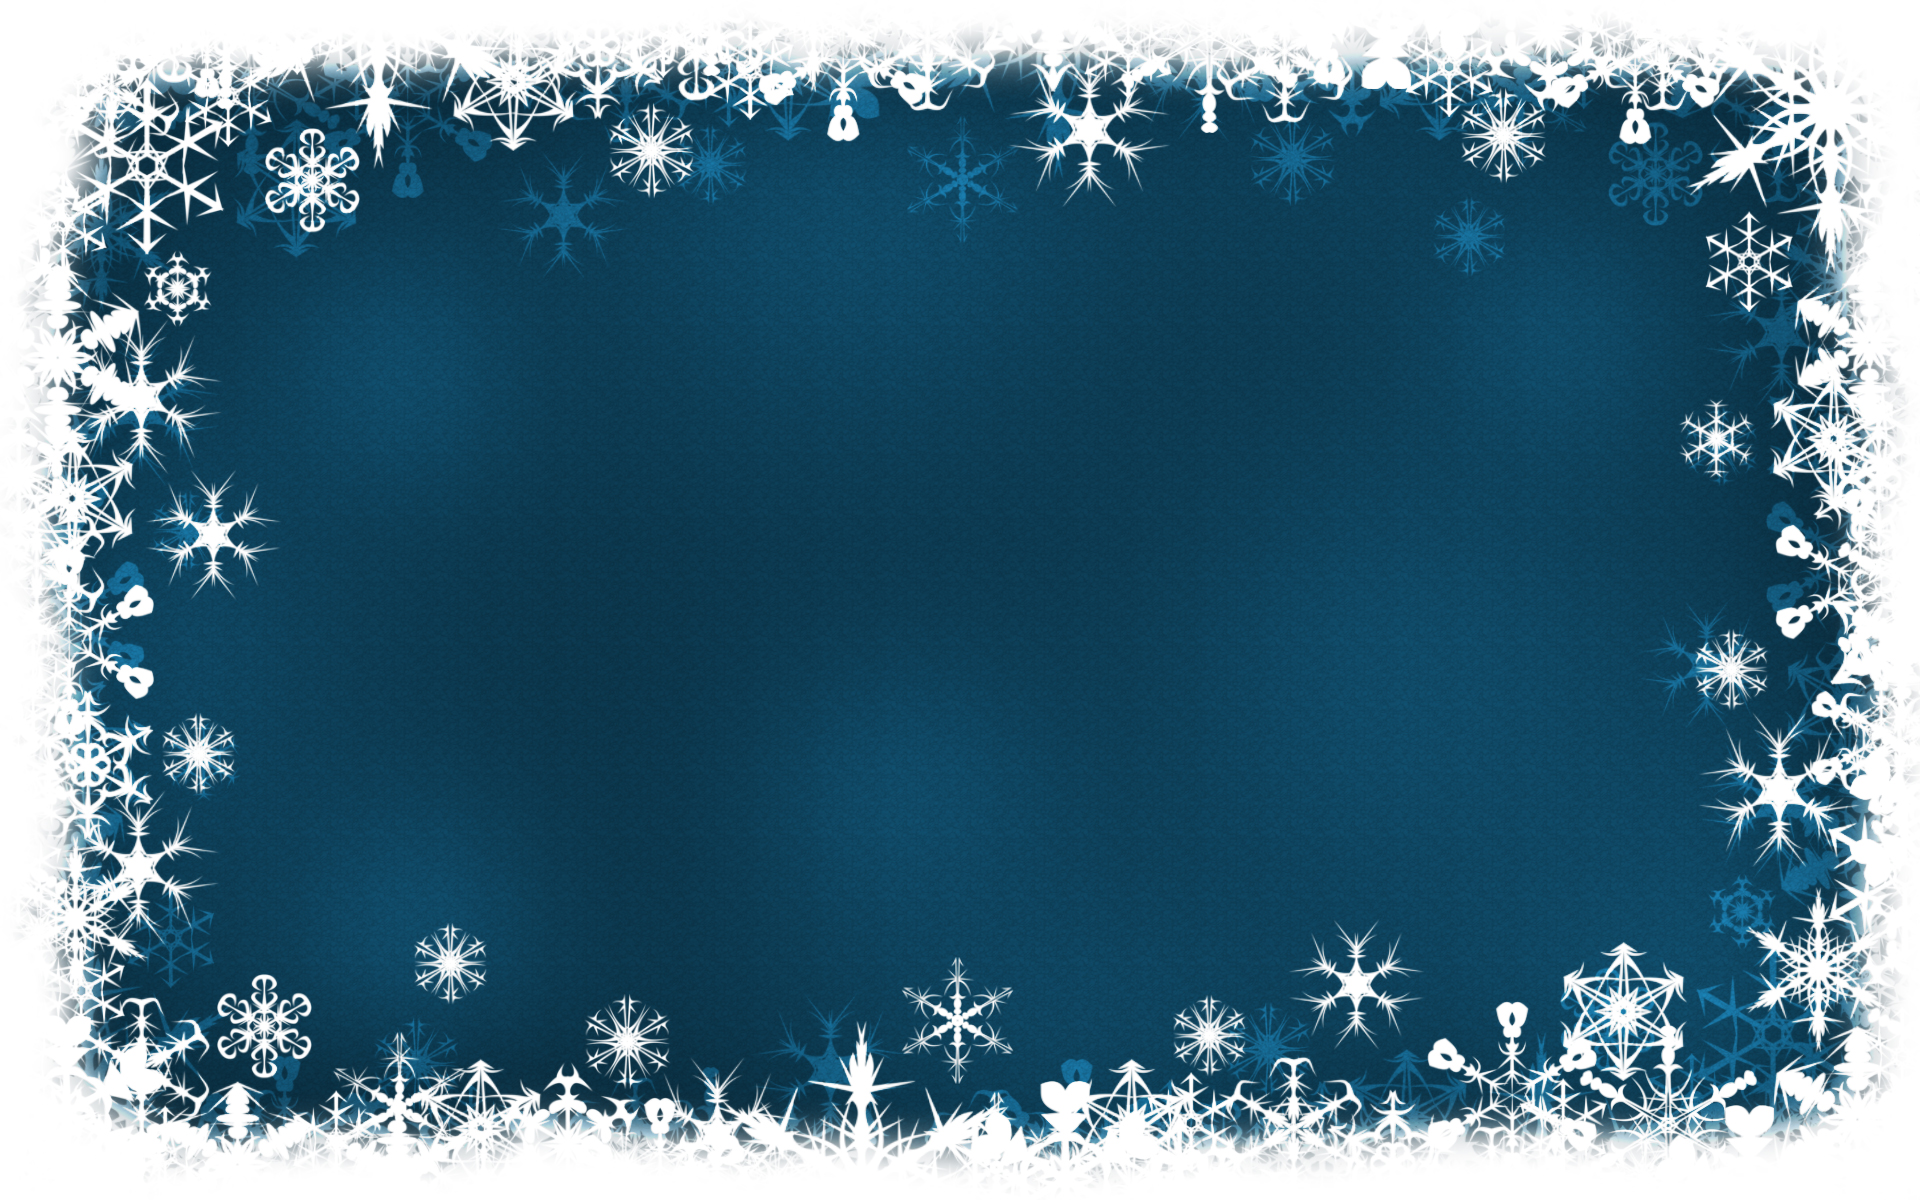 Blue Christmas Background Wallpaper Images amp Pictures   Becuo 1920x1200